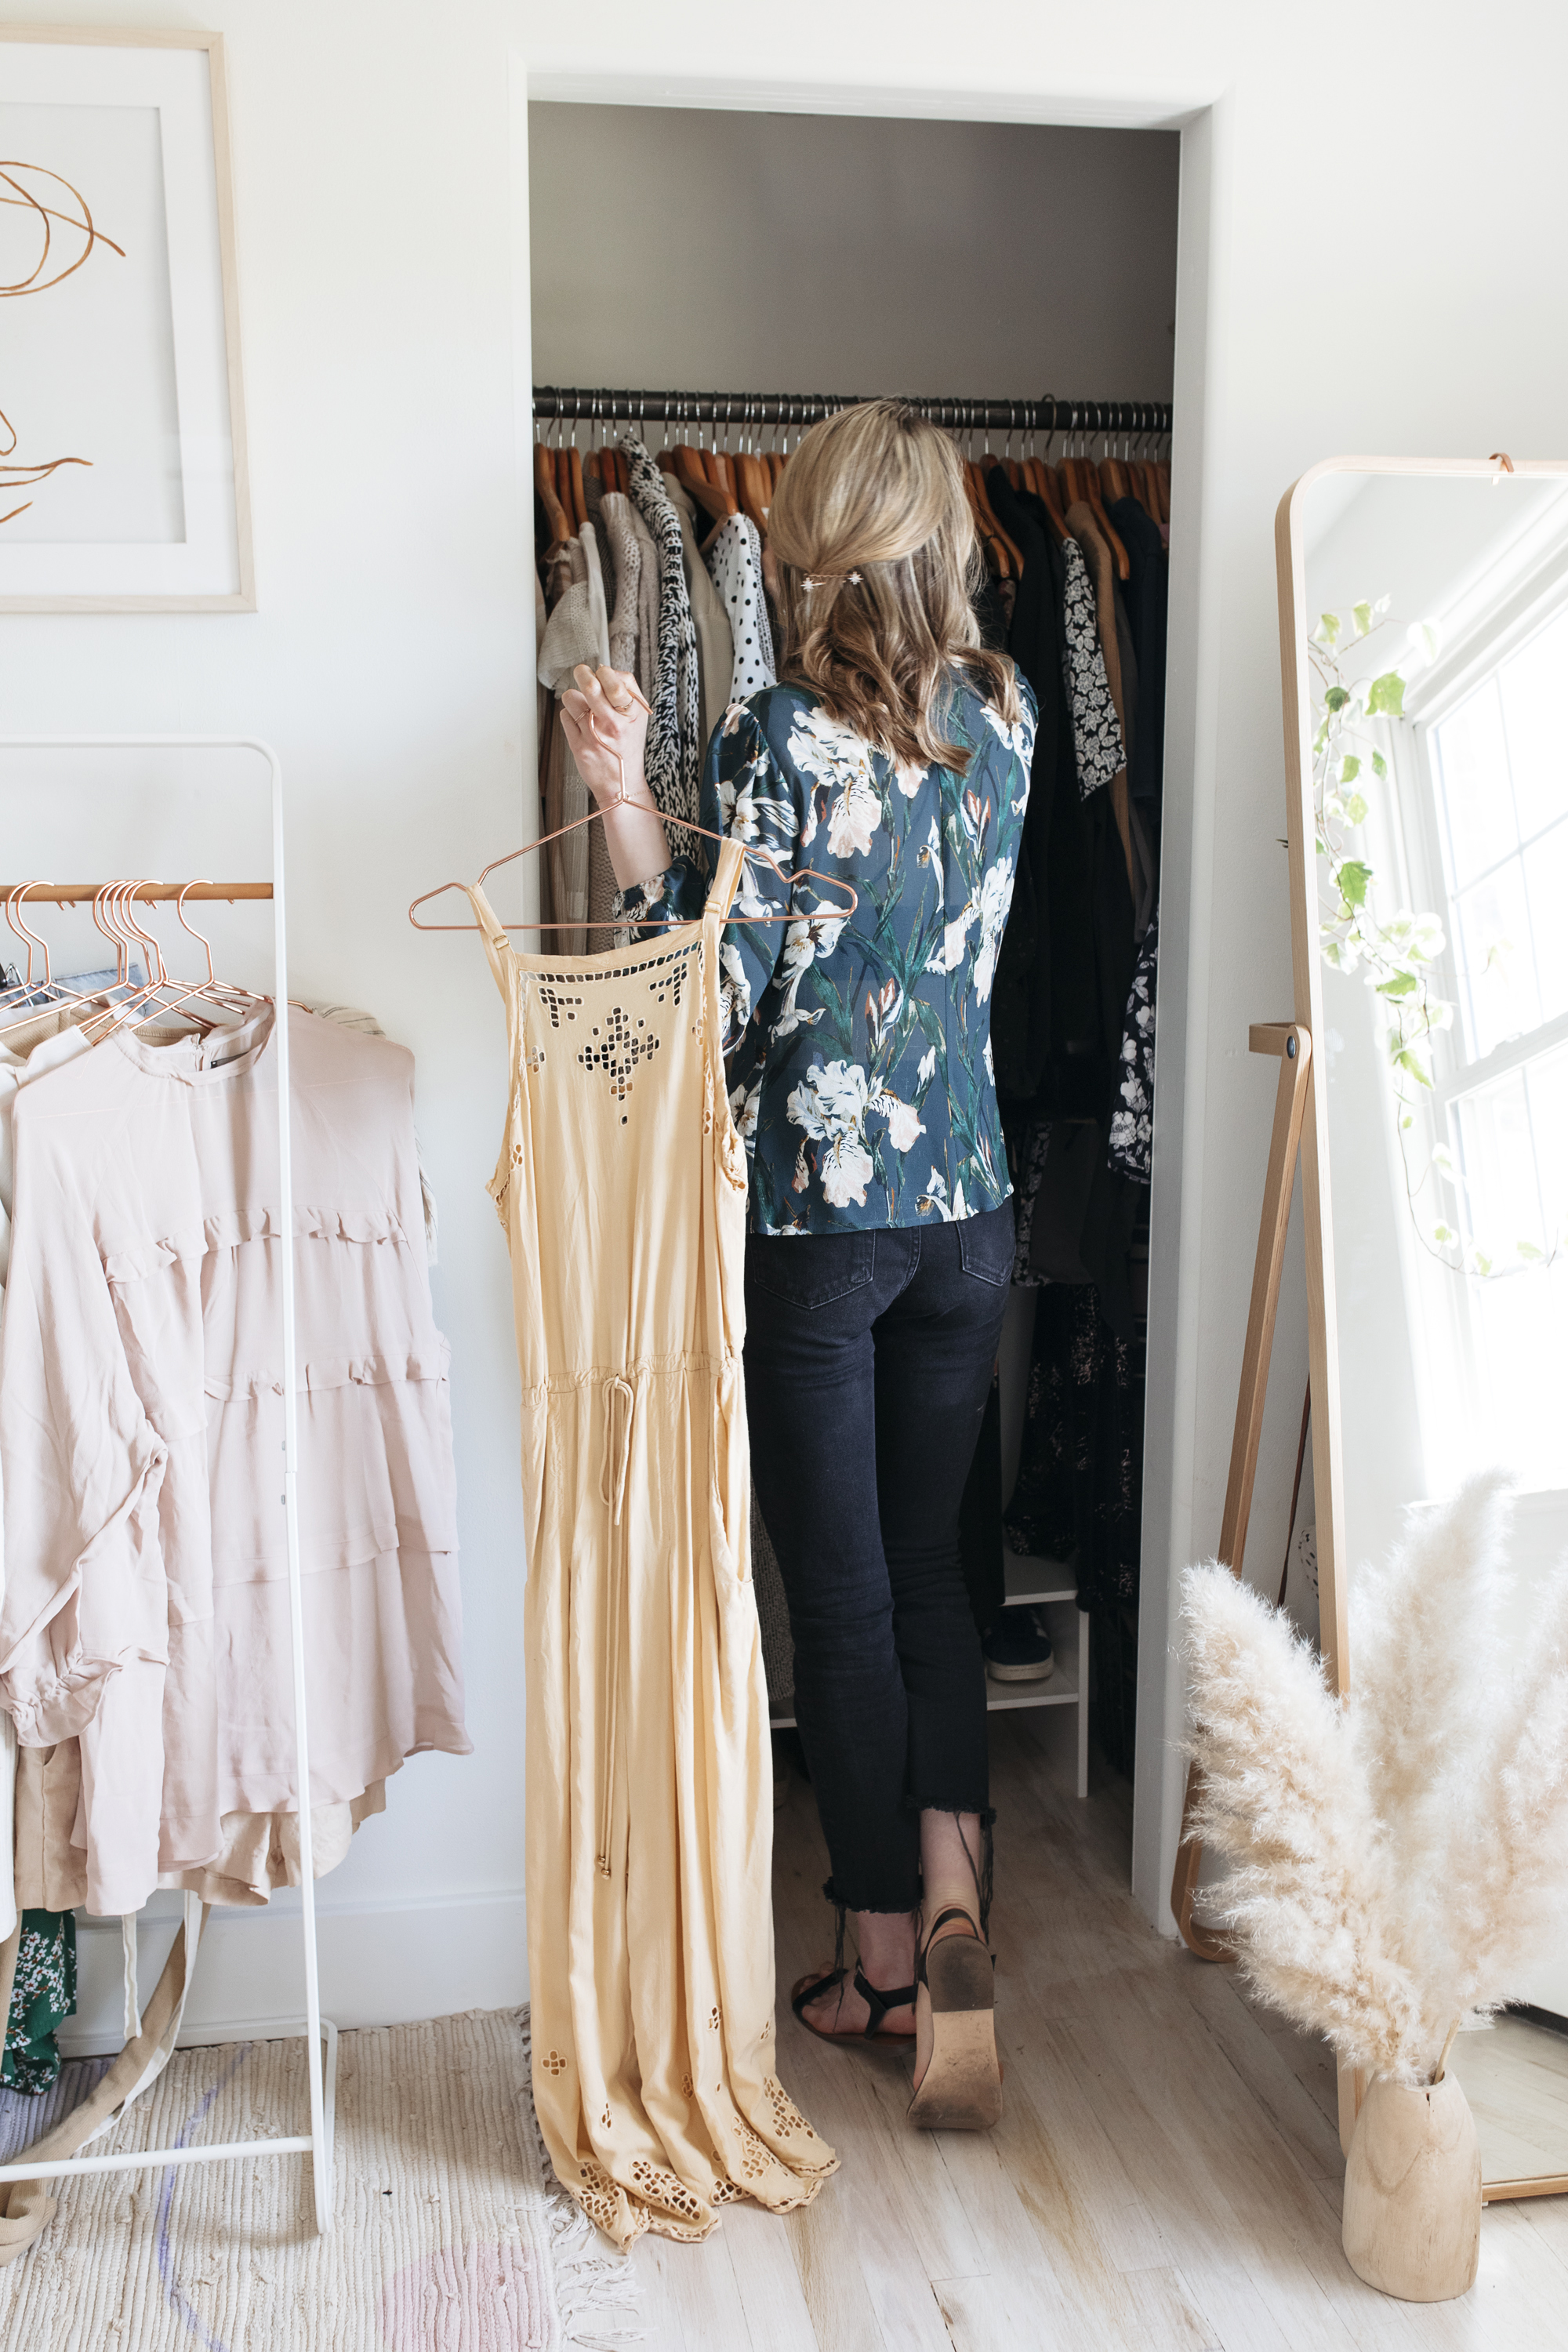 I love soft colors and a simple color palette to design my spring wardrobe